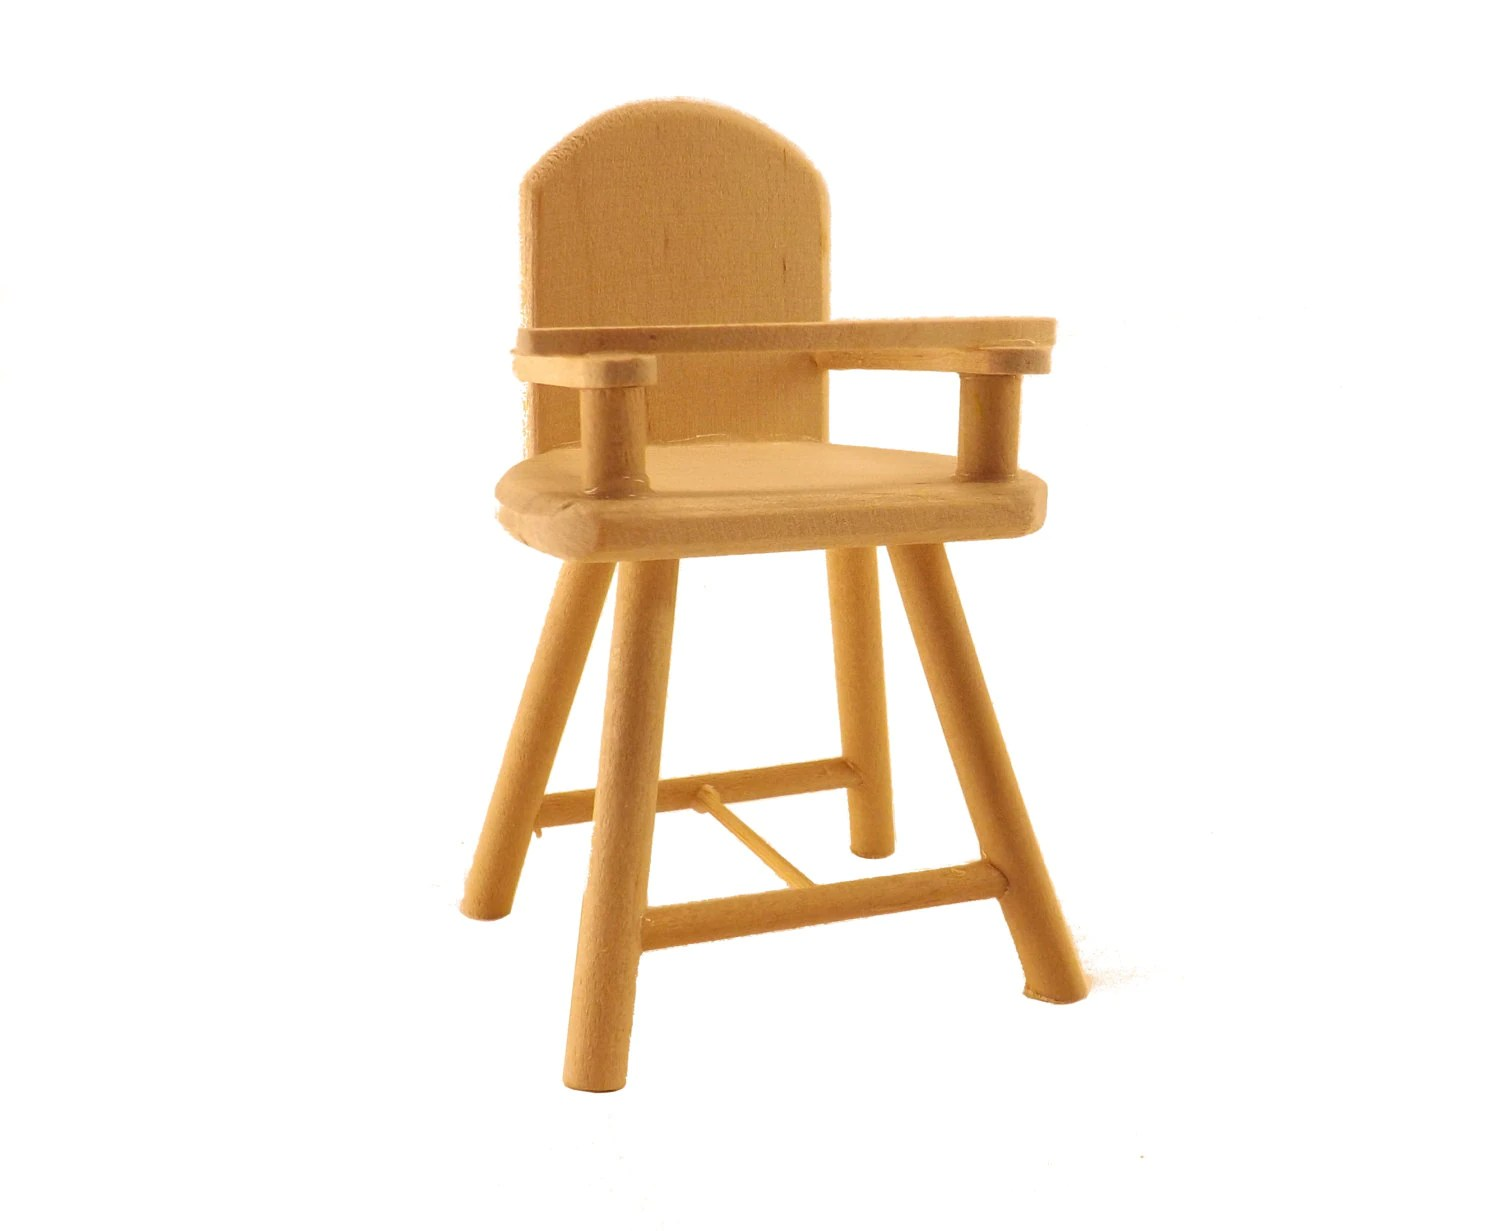 Unfinished Chair Unfinished Wood Pine High Chair Craft And Dollhouse Miniature